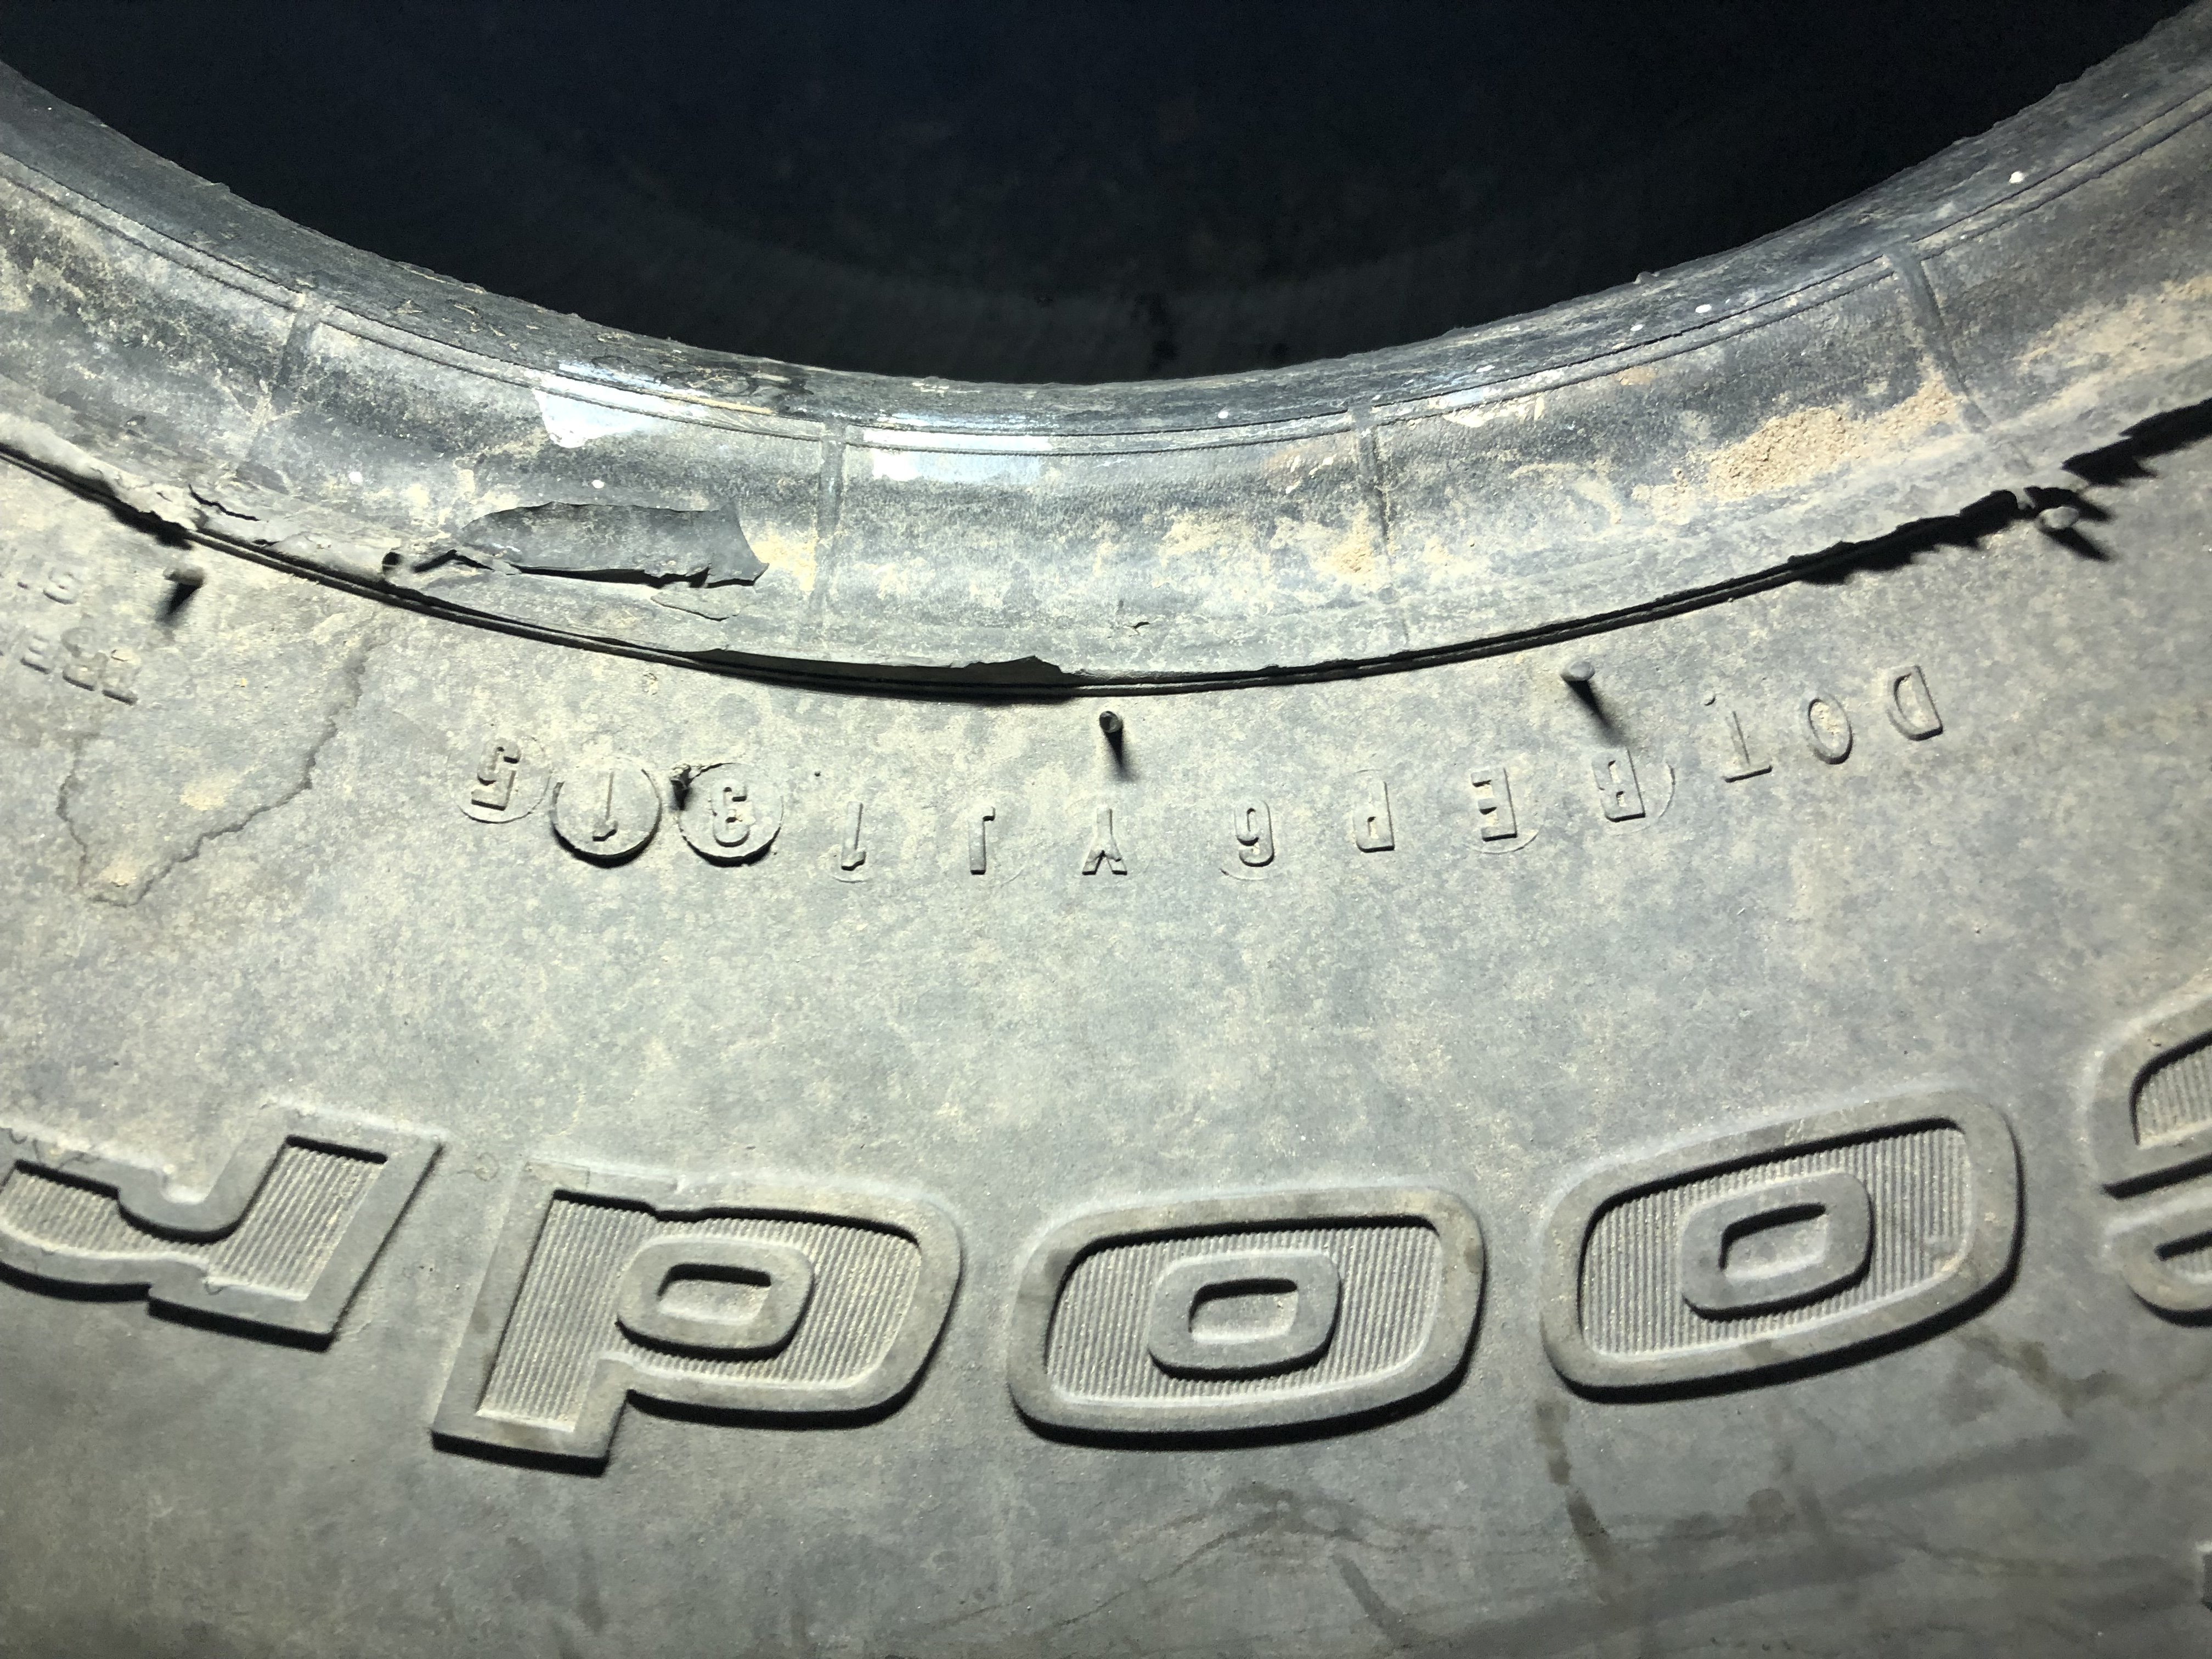 What Do You Make Of This Tire Date Code Rising Sun 4wd Club Of